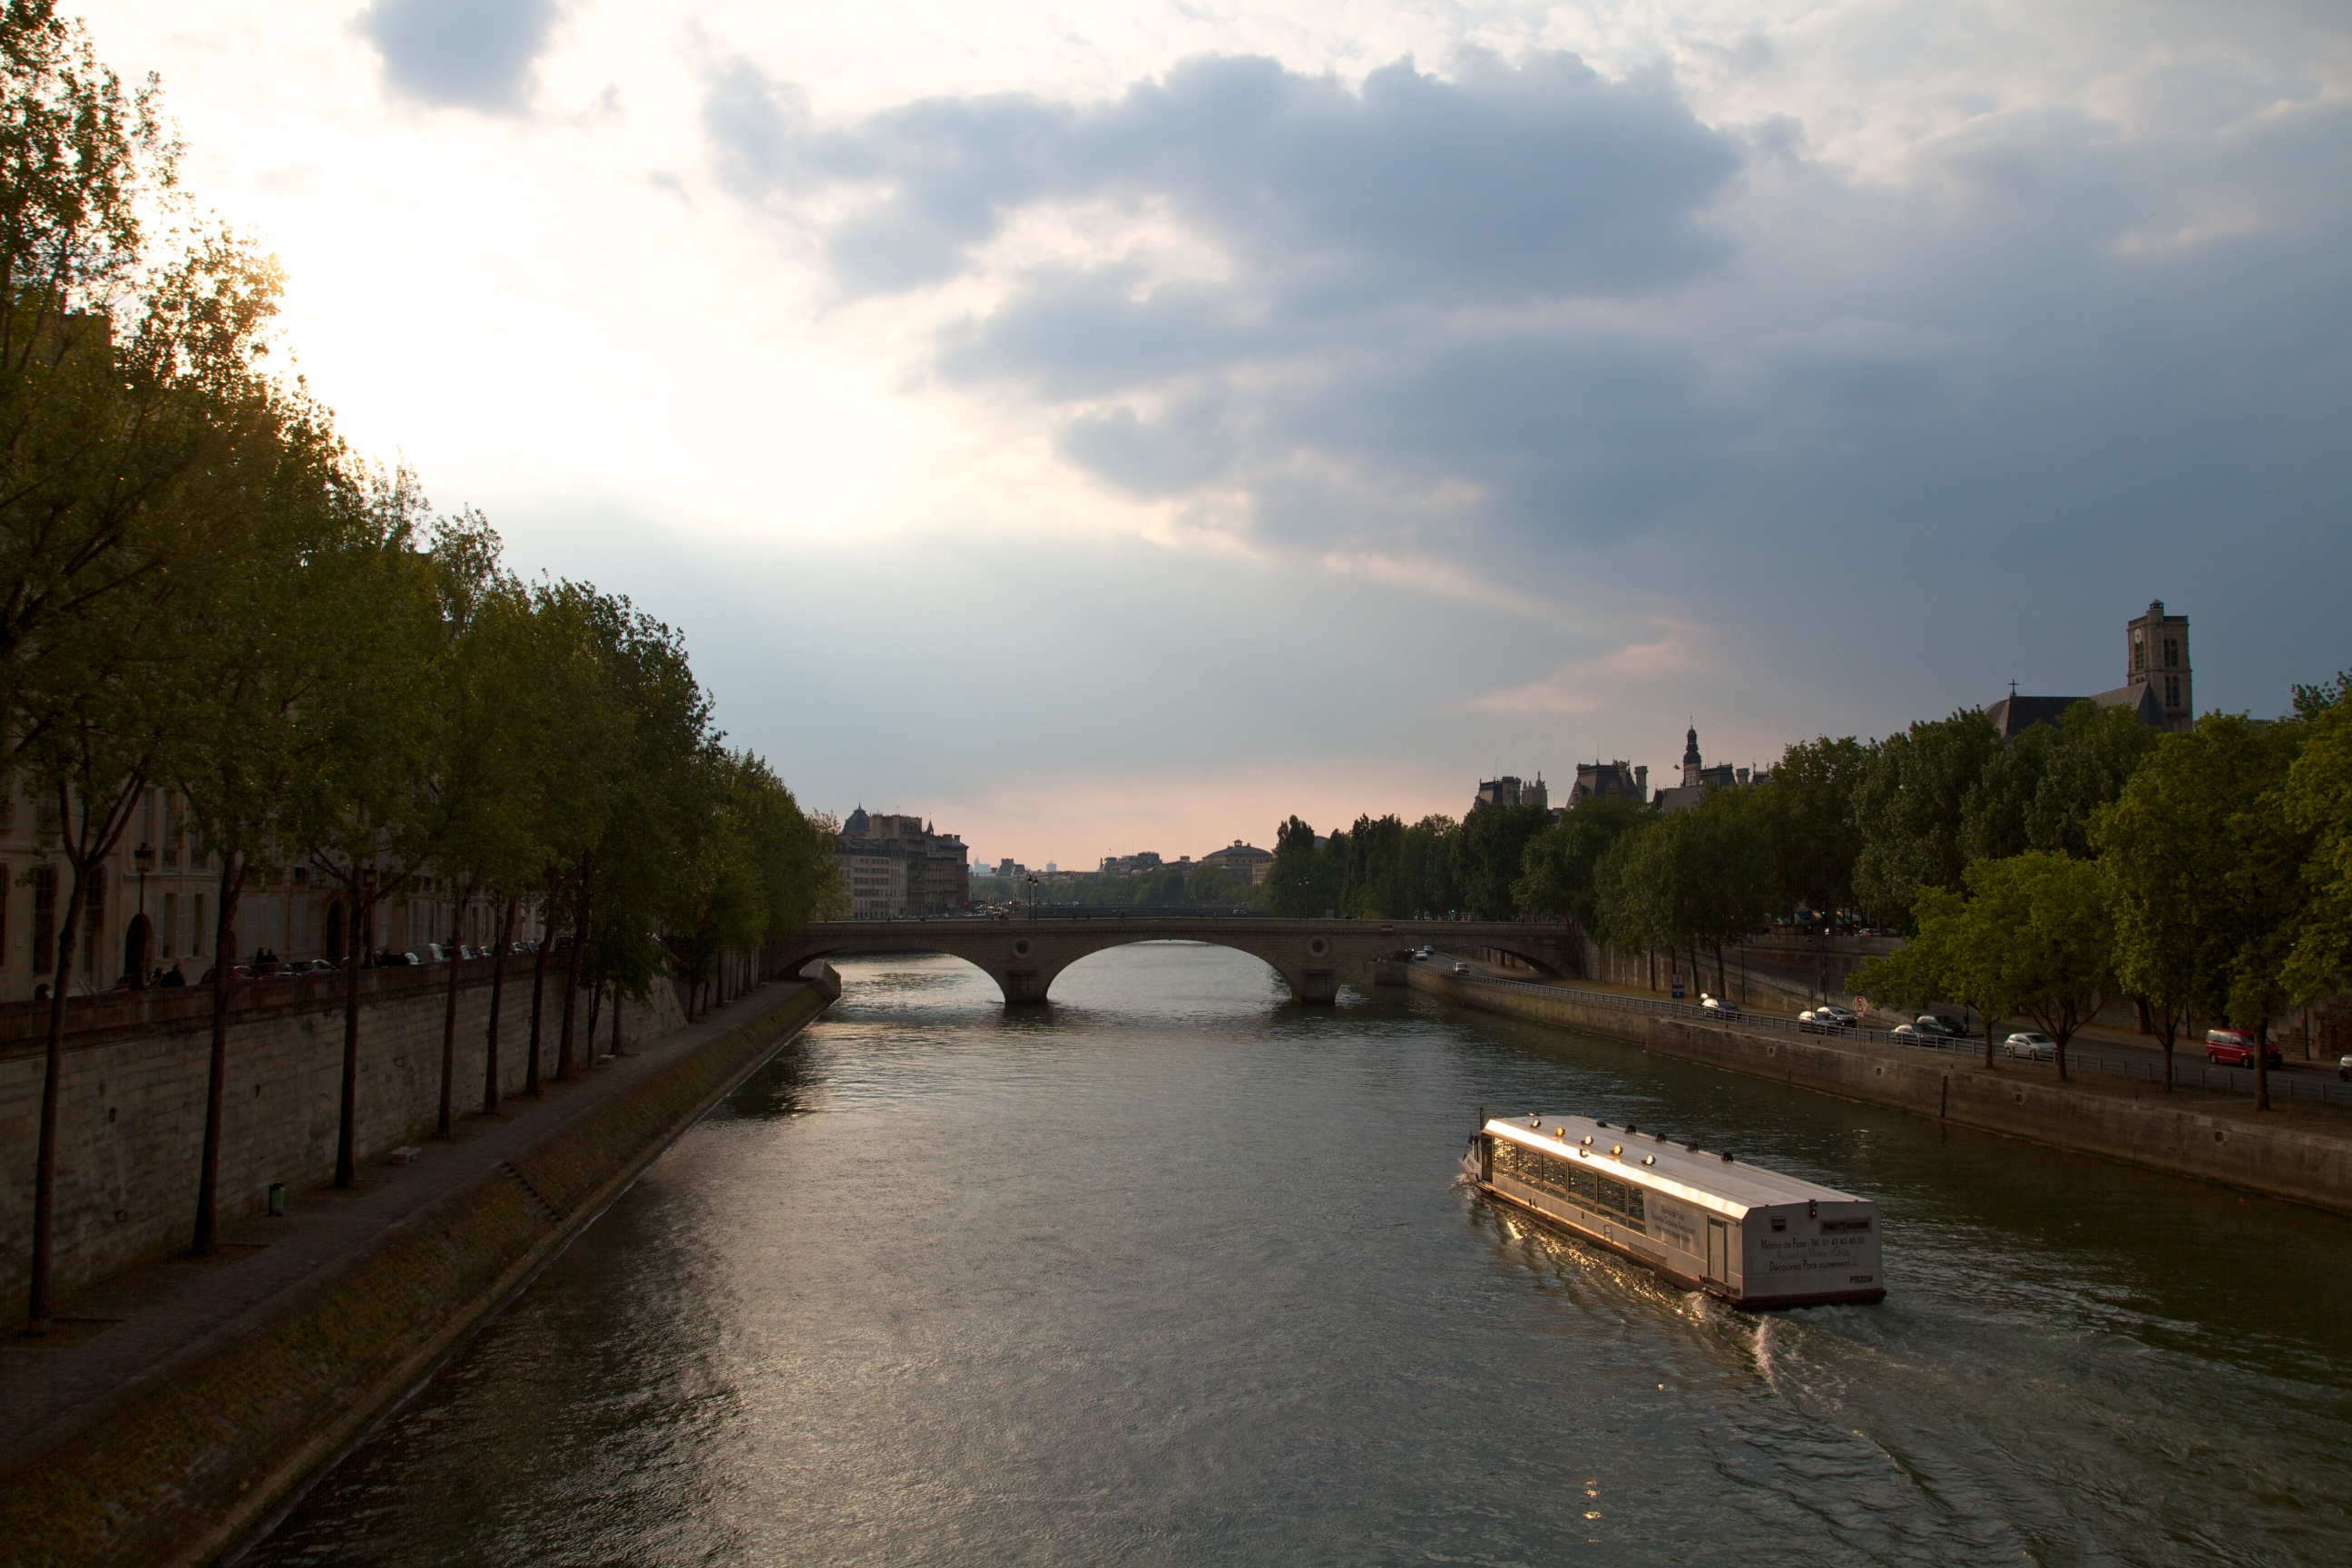 The Seine River at dusk, Paris.